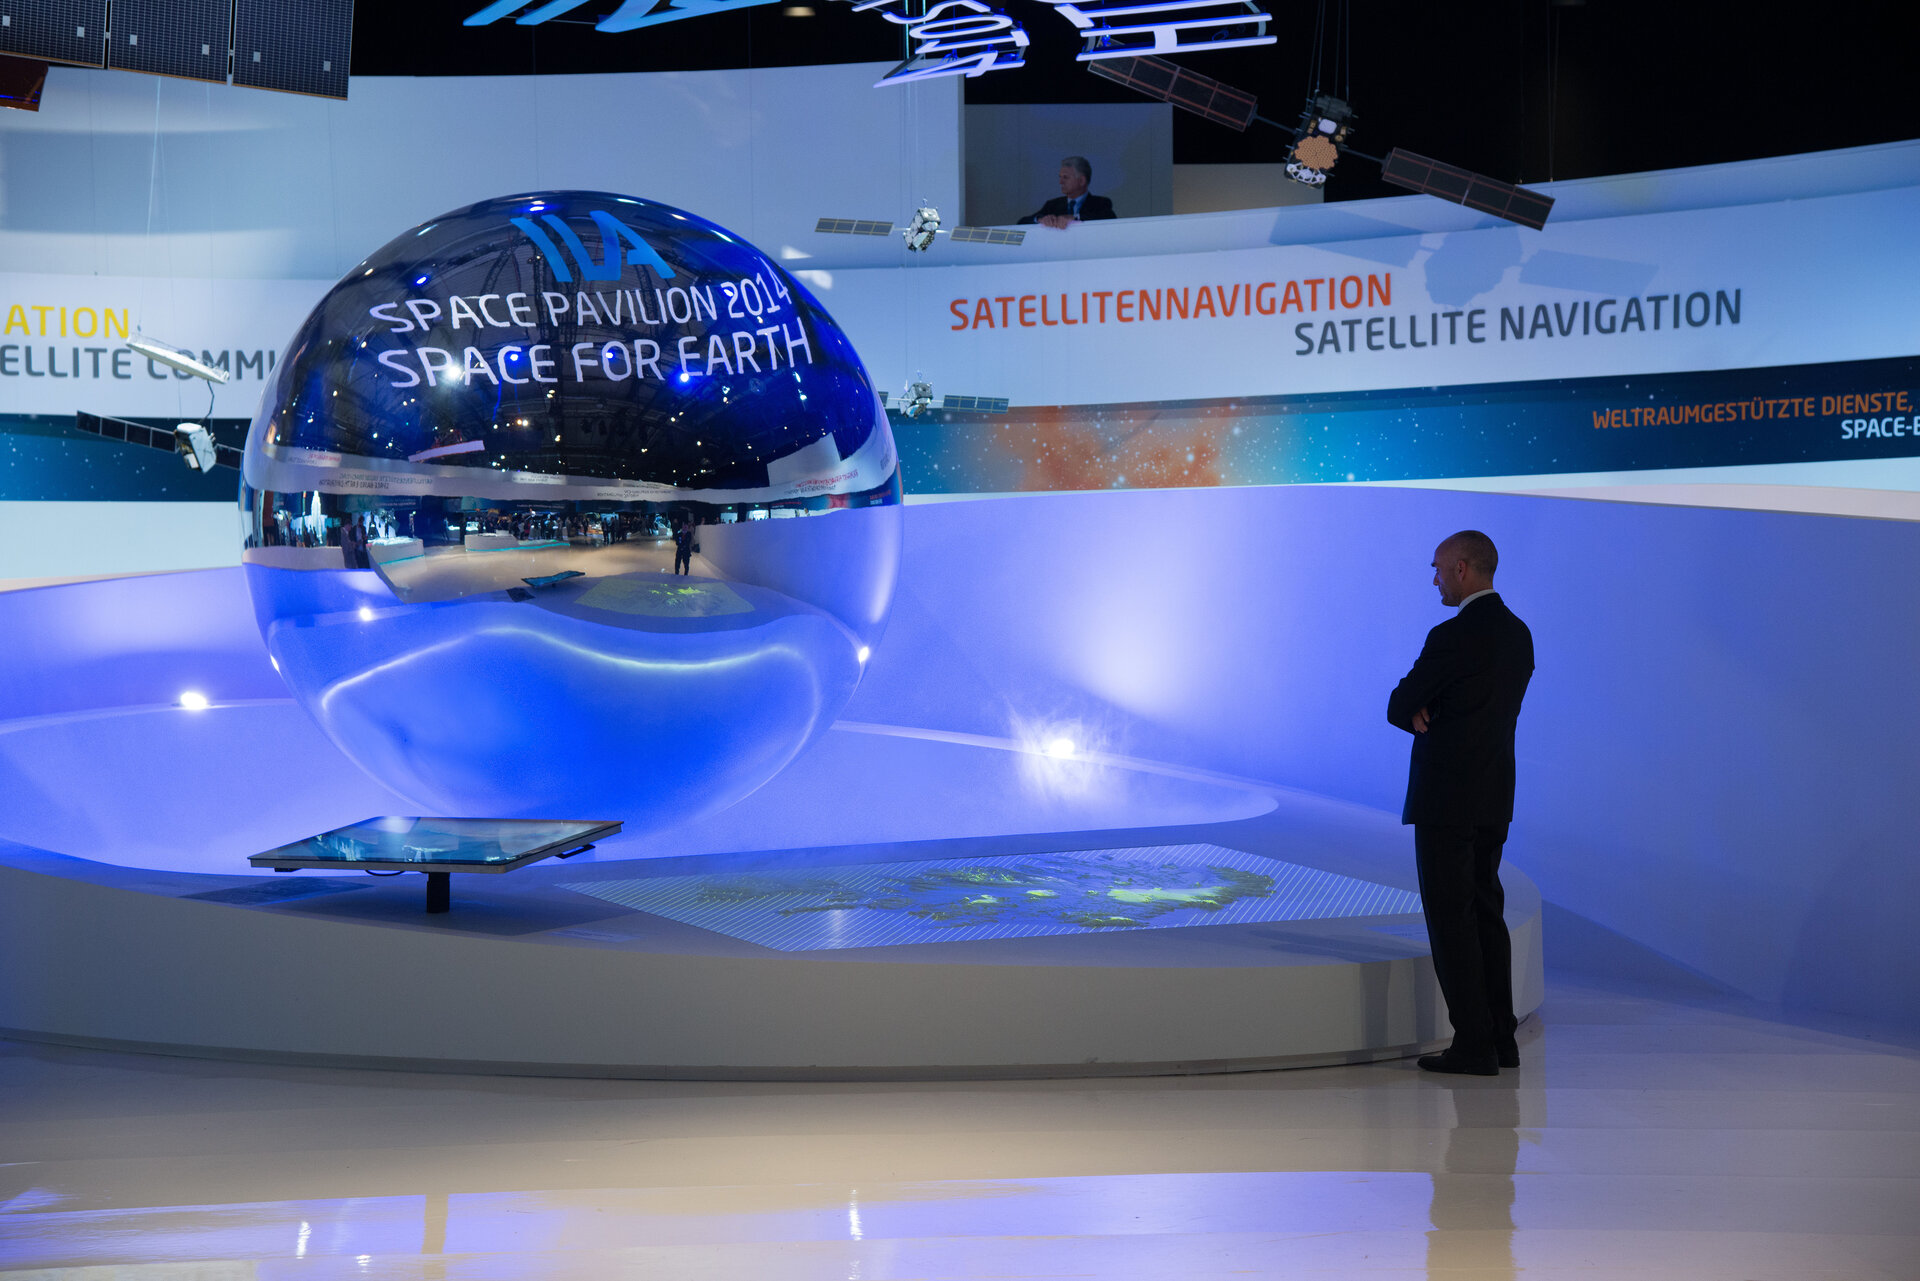 'Space for Earth' space pavilion at ILA